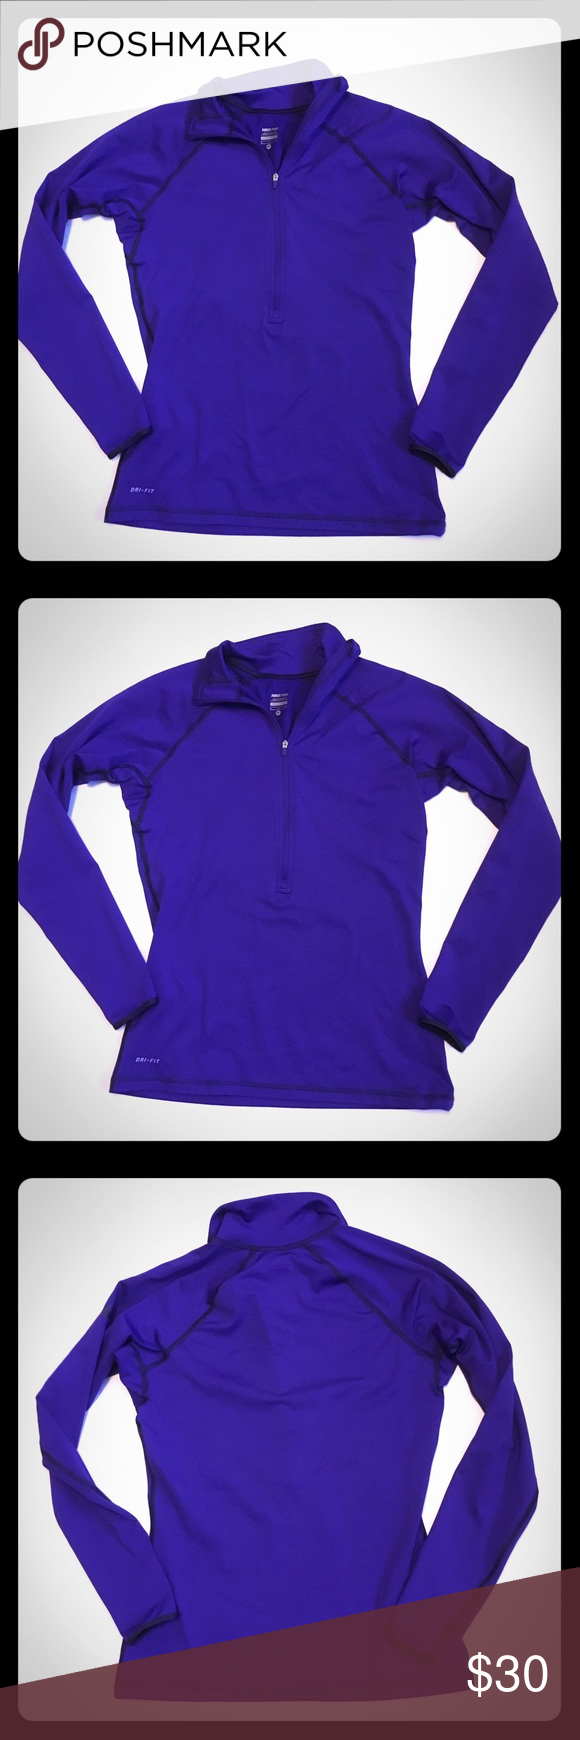 bdf109085db2 Nike Pro dri-fit Purple half zip running jacket Nike Pro dri-fit purple  half zip running sweatshirt. Gently used and in good condition! Lined in  light ...